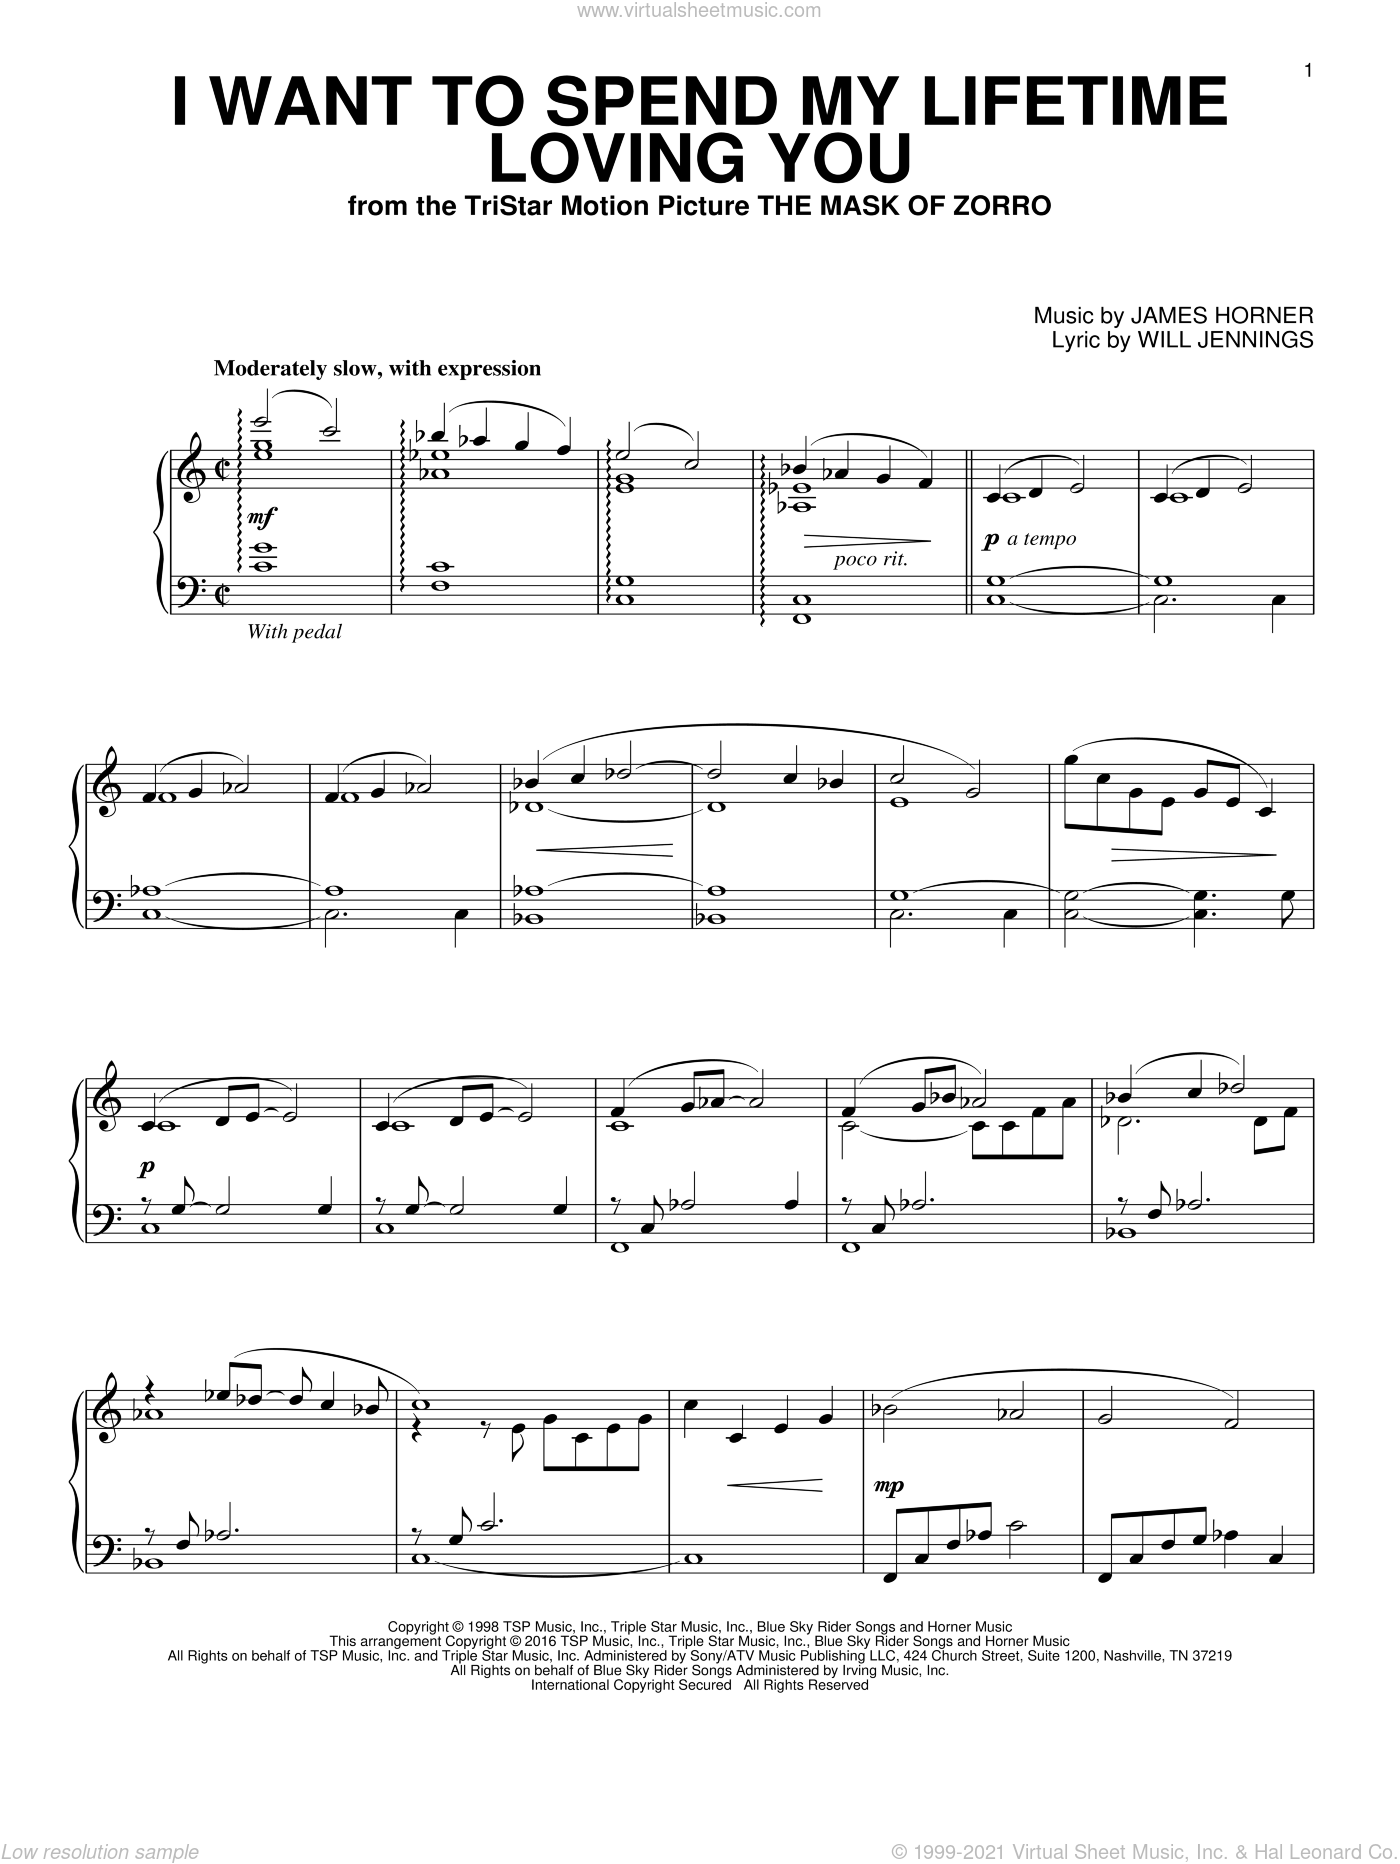 I Want To Spend My Lifetime Loving You sheet music for piano solo by Marc Anthony and Tina Arena, James Horner and Will Jennings, wedding score, intermediate skill level